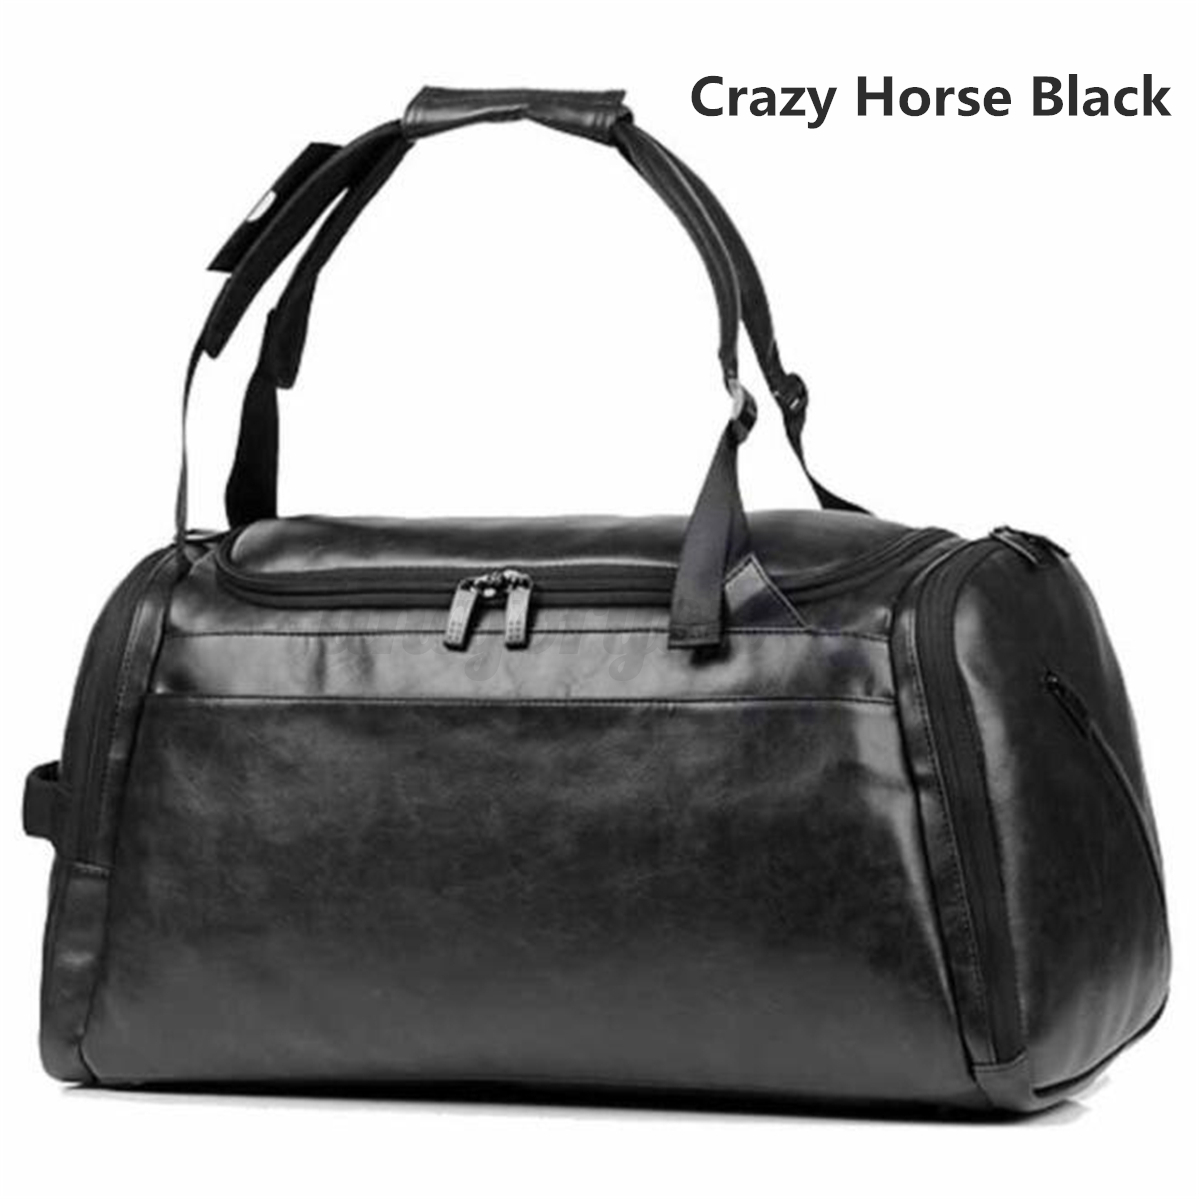 Men-Leather-Sports-Gym-Travel-Fitness-Bag-With-Shoe-Storage-Luggage-Duffle-Tote thumbnail 14